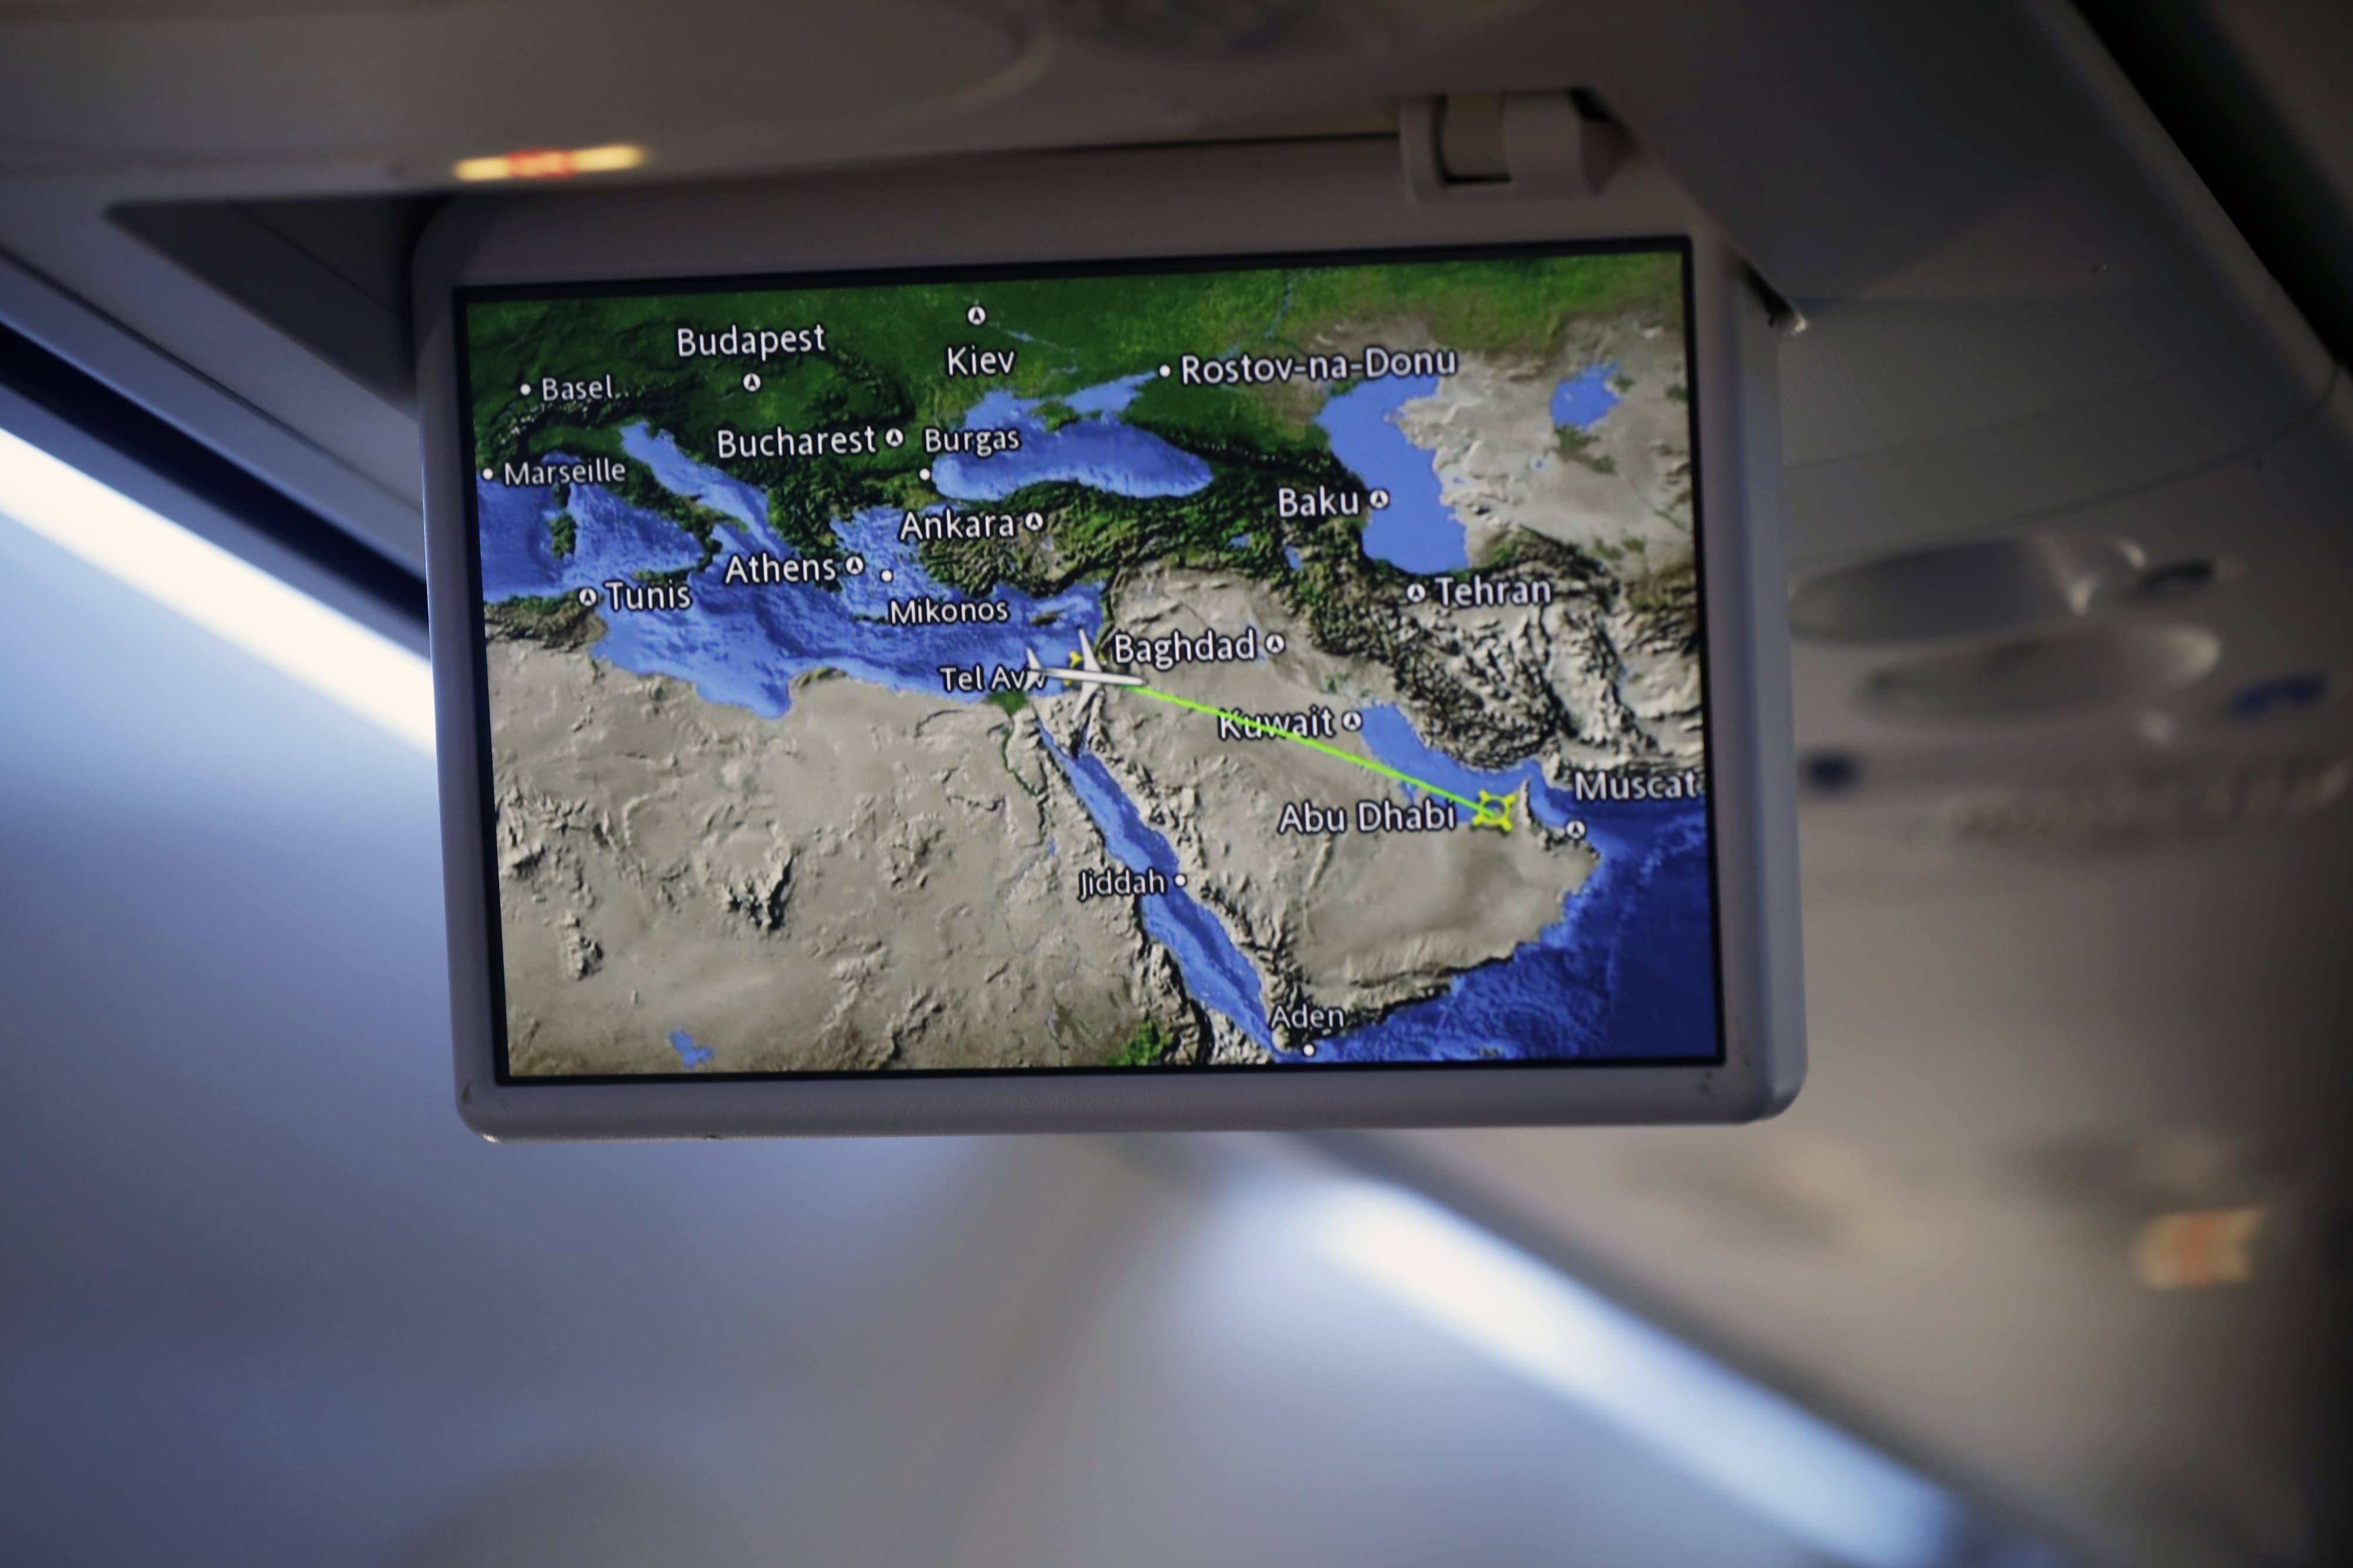 """FILE- In this Monday, Aug. 31, 2020 file photo, an overhead screen displays a map showing the flight route of an El Al plane from Israel en route to Abu Dhabi, United Arab Emirates. The Saudi Press Agency announced Wednesday, Sept. 2, 2020, that it will allow flights """"from all countries"""" to cross its skies to reach the United Arab Emirates. The announcement comes just days after Saudi Arabia allowed the first direct Israeli commercial passenger flight to use its airspace to reach the UAE, signaling acquiescence for a breakthrough U.S.-brokered deal by the United Arab Emirates to normalize relations with Israel. (Nir Elias/Pool Photo via AP, File)"""